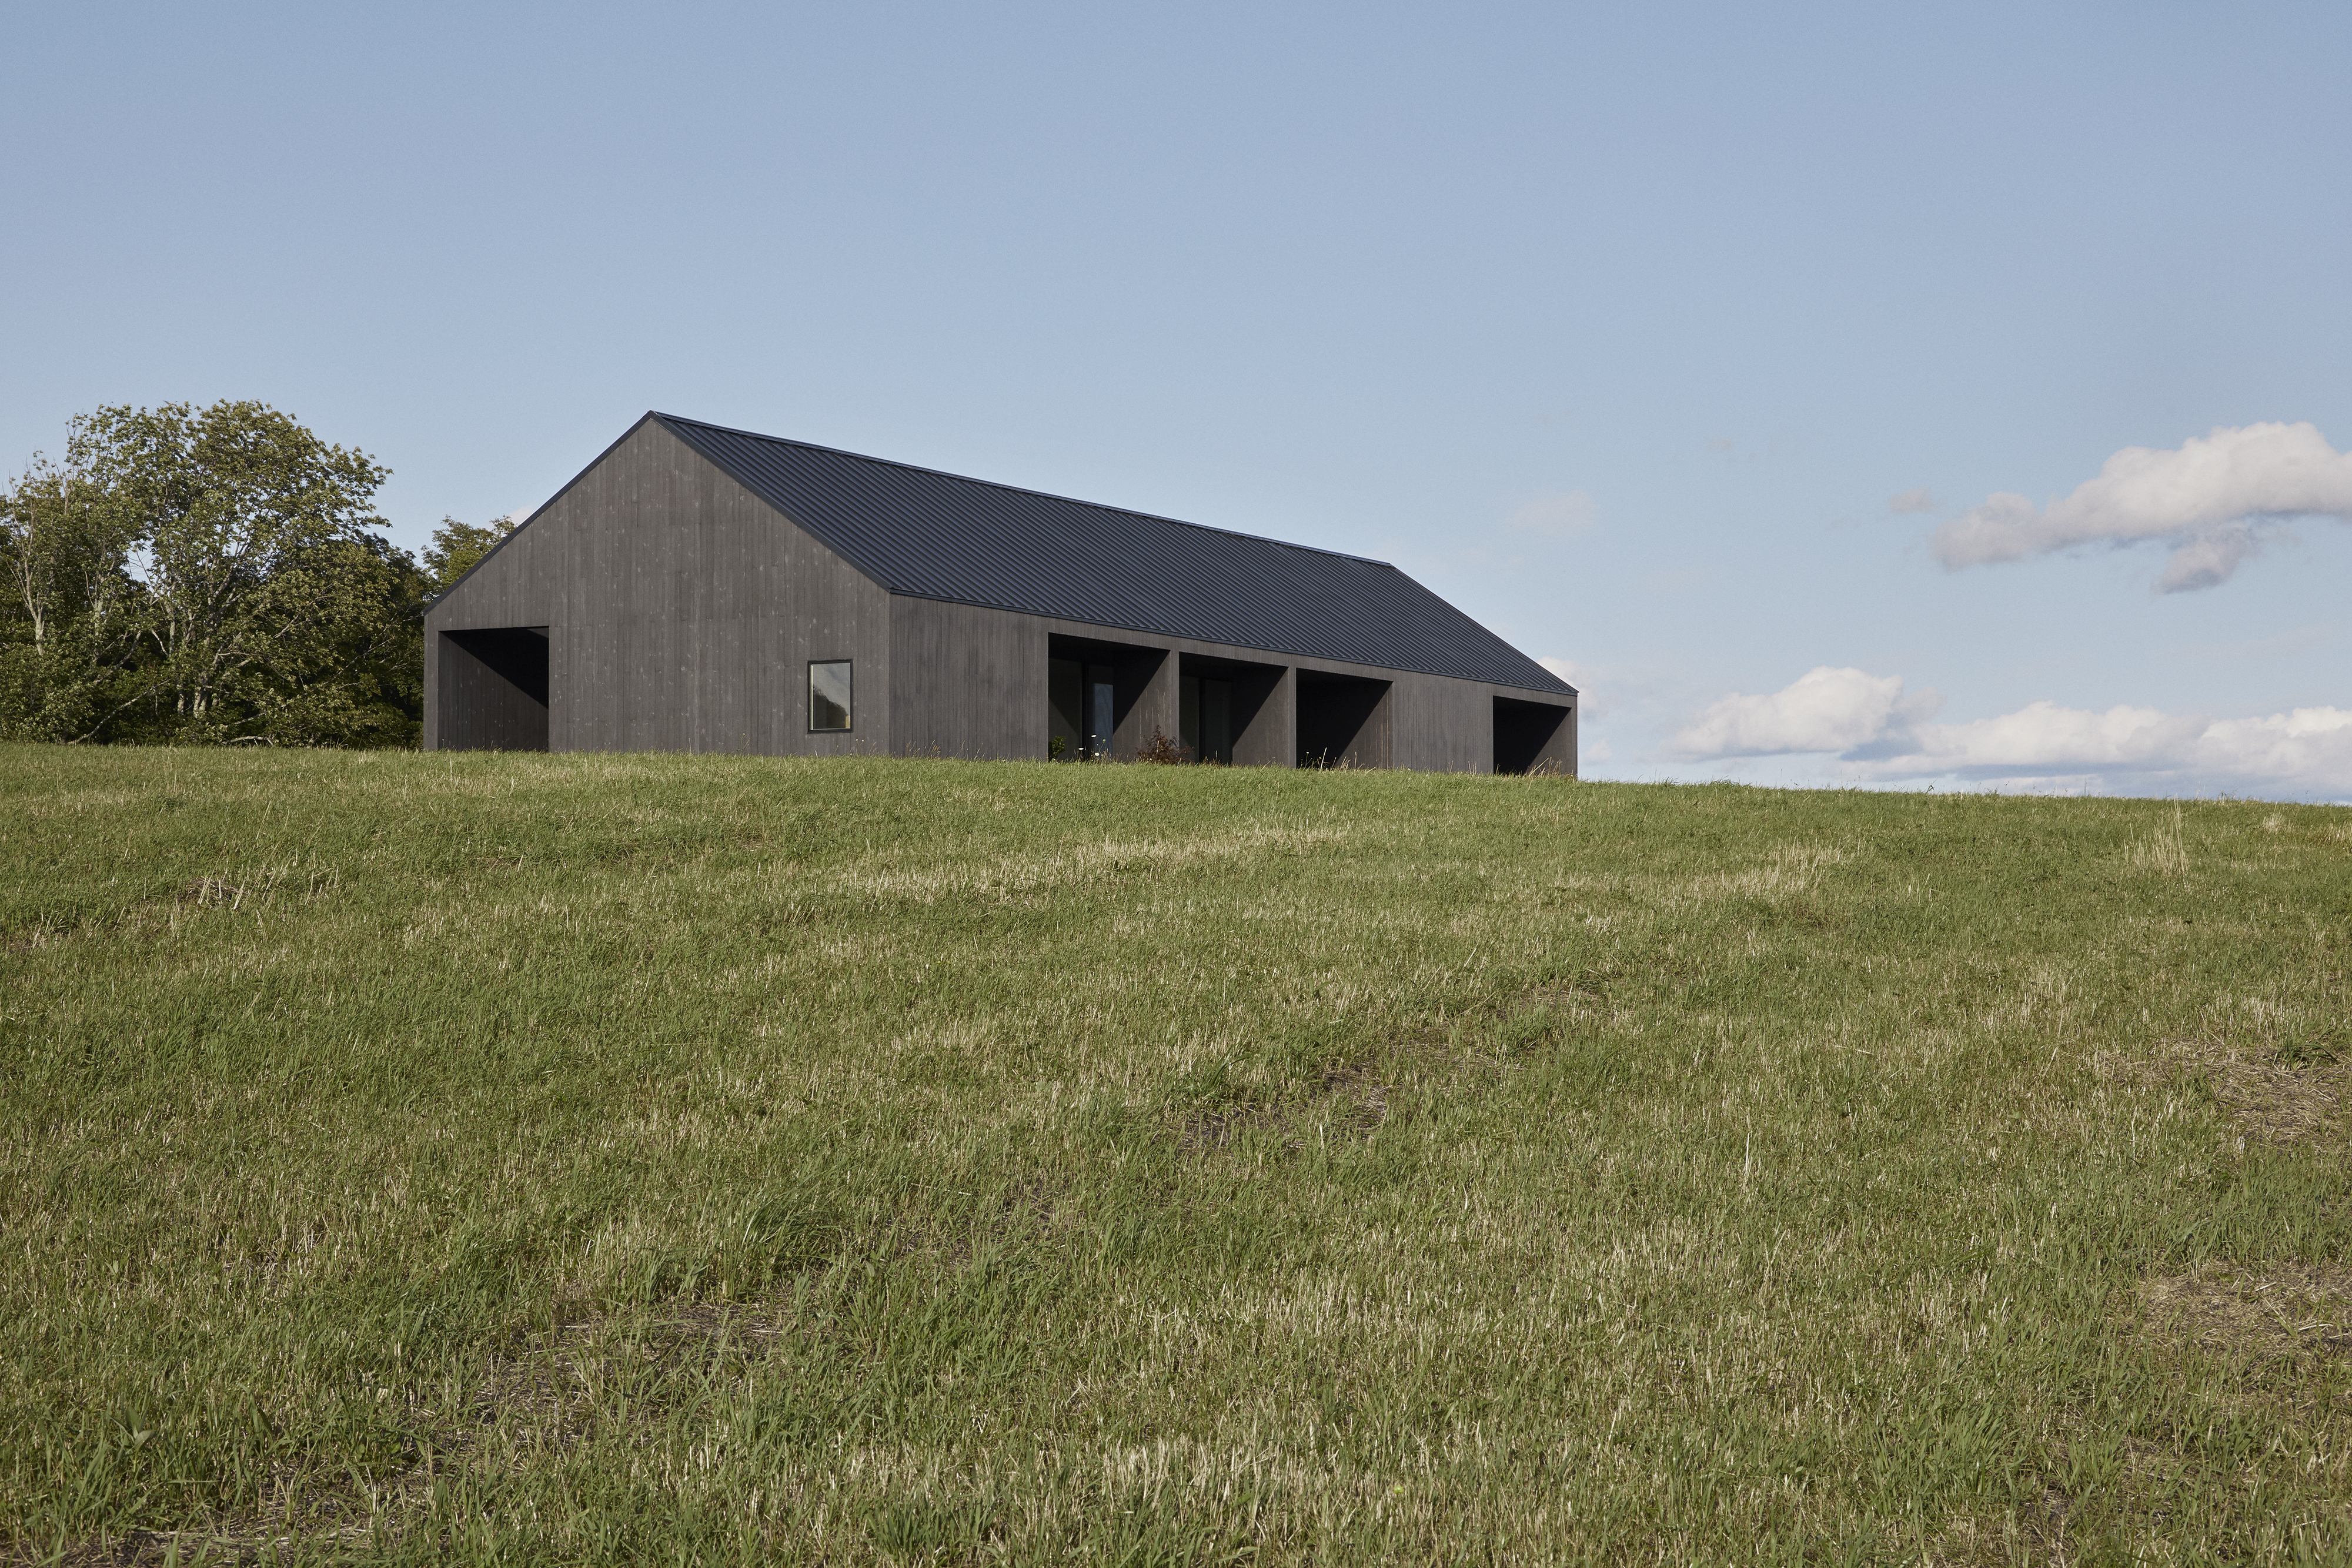 Dark stained wood house on rolling green hill.